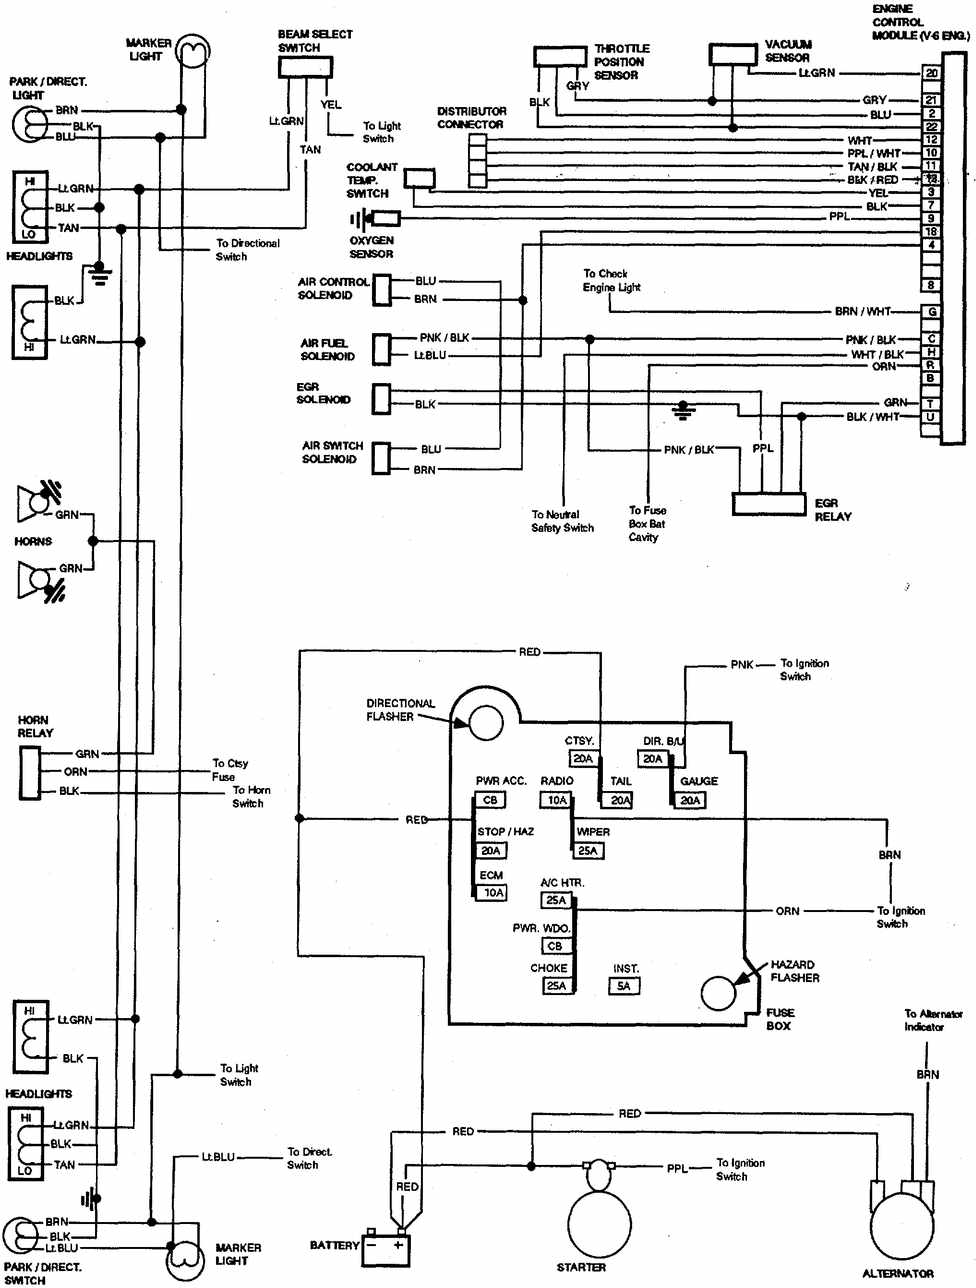 chevrolet v8 trucks 1981 1987 electrical wiring diagram 1977 chevy truck wiring diagram 1986 chevy truck [ 976 x 1288 Pixel ]